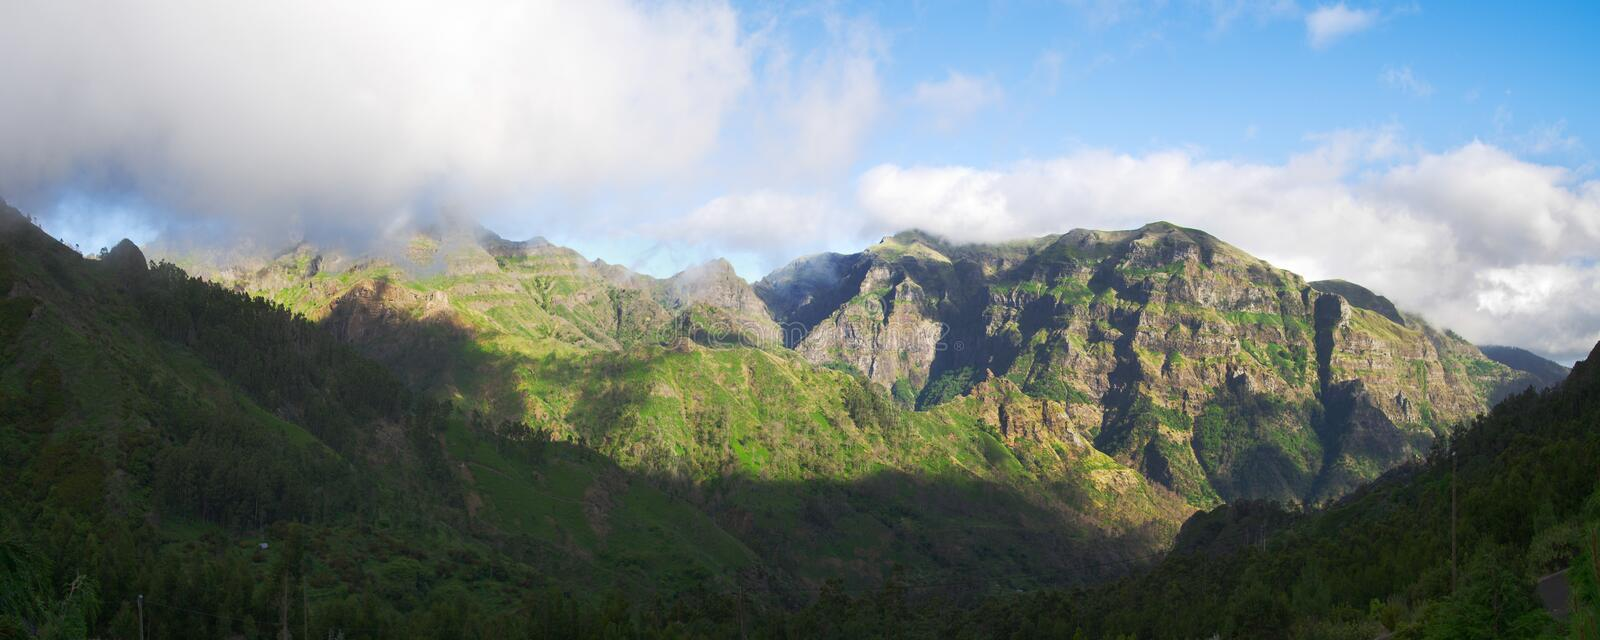 Mountains and fog in central Madeira island royalty free stock image